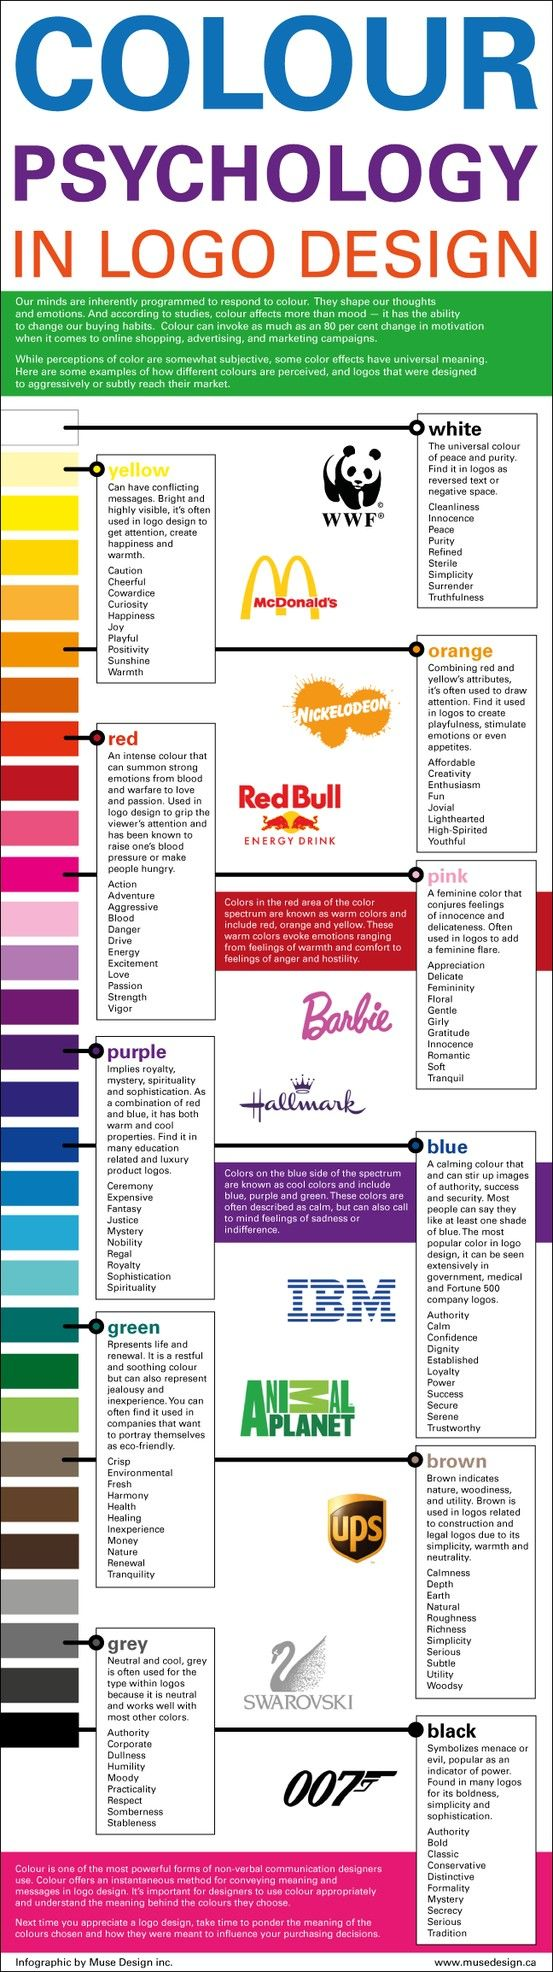 Mood Colors Meanings Best 25 Color Psychology Ideas On Pinterest Psychology Of Color